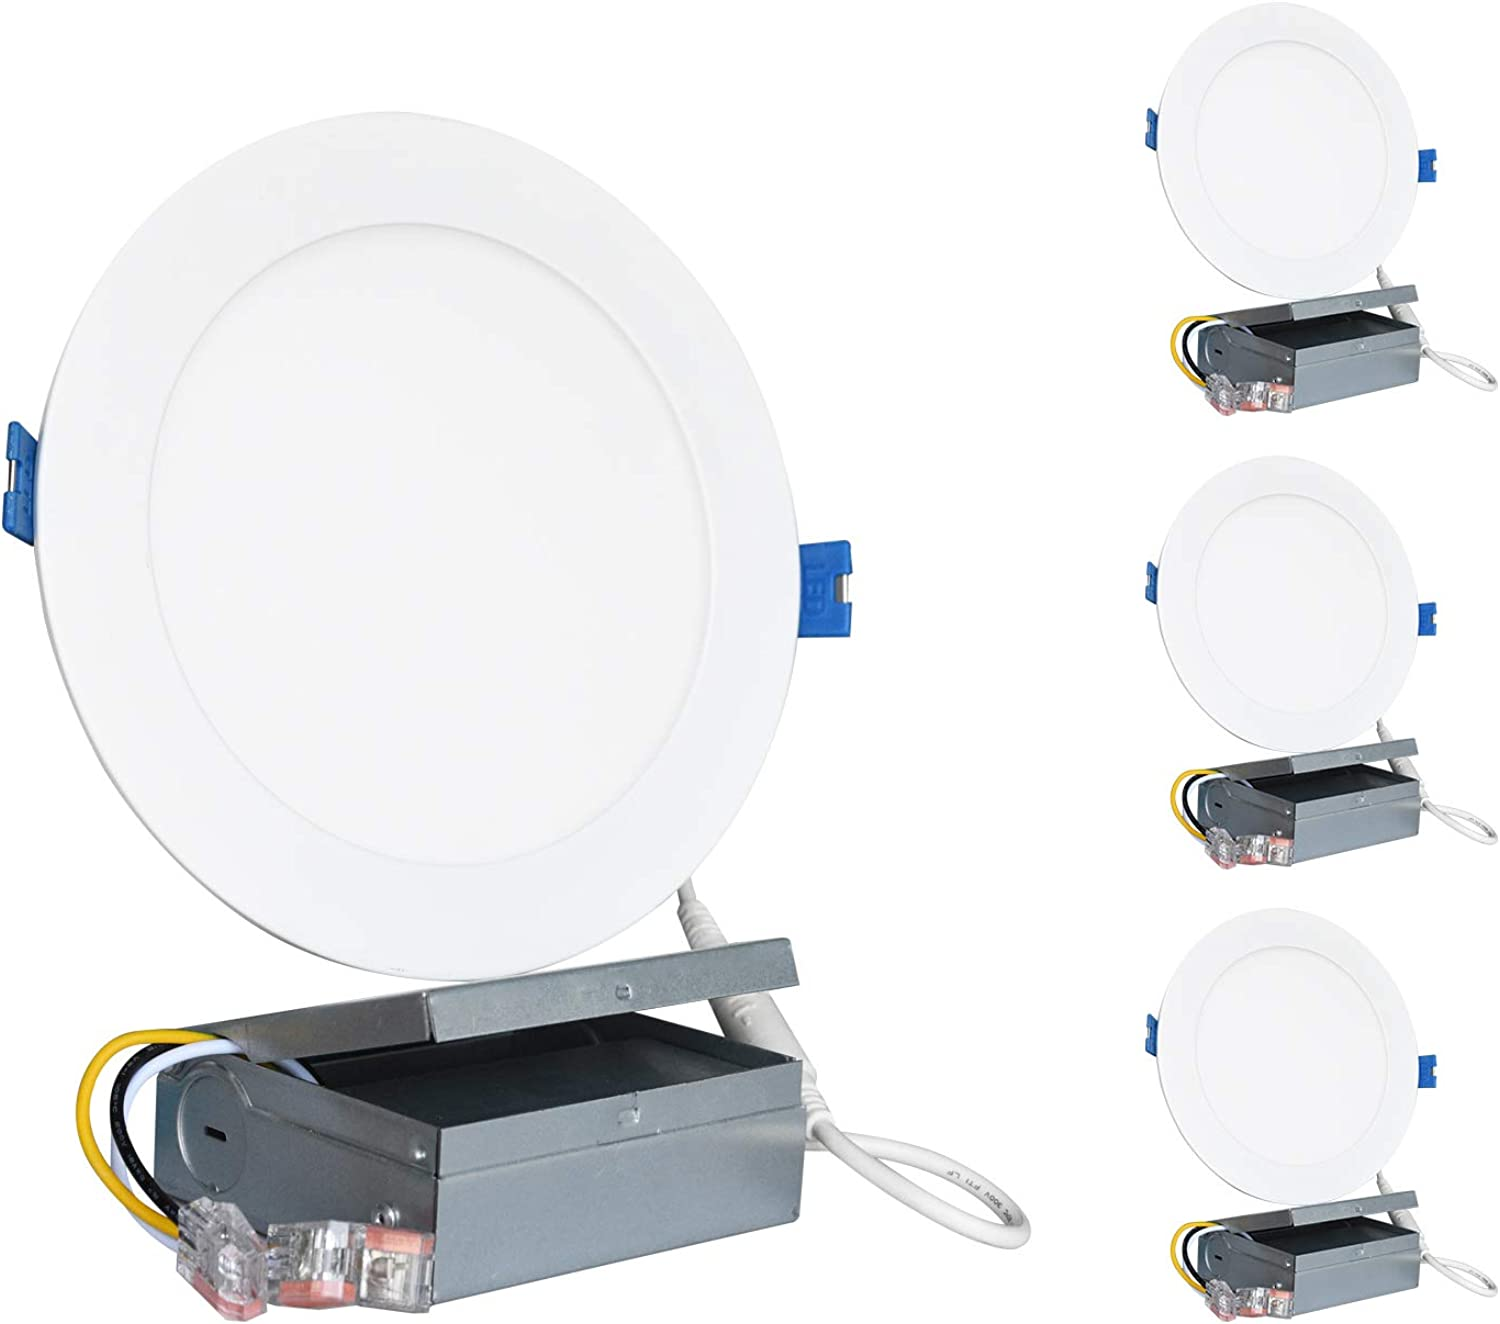 SUNTHIN (4 Pack) 6 inch LED Recessed Ceiling Light with Junction Box, 120V, 14W(100W Replacement) Dimmable Downlight Retrofit, 1000Lm, 3000K Warm White, Simple Retrofit Inssizetion, UL Energy Star